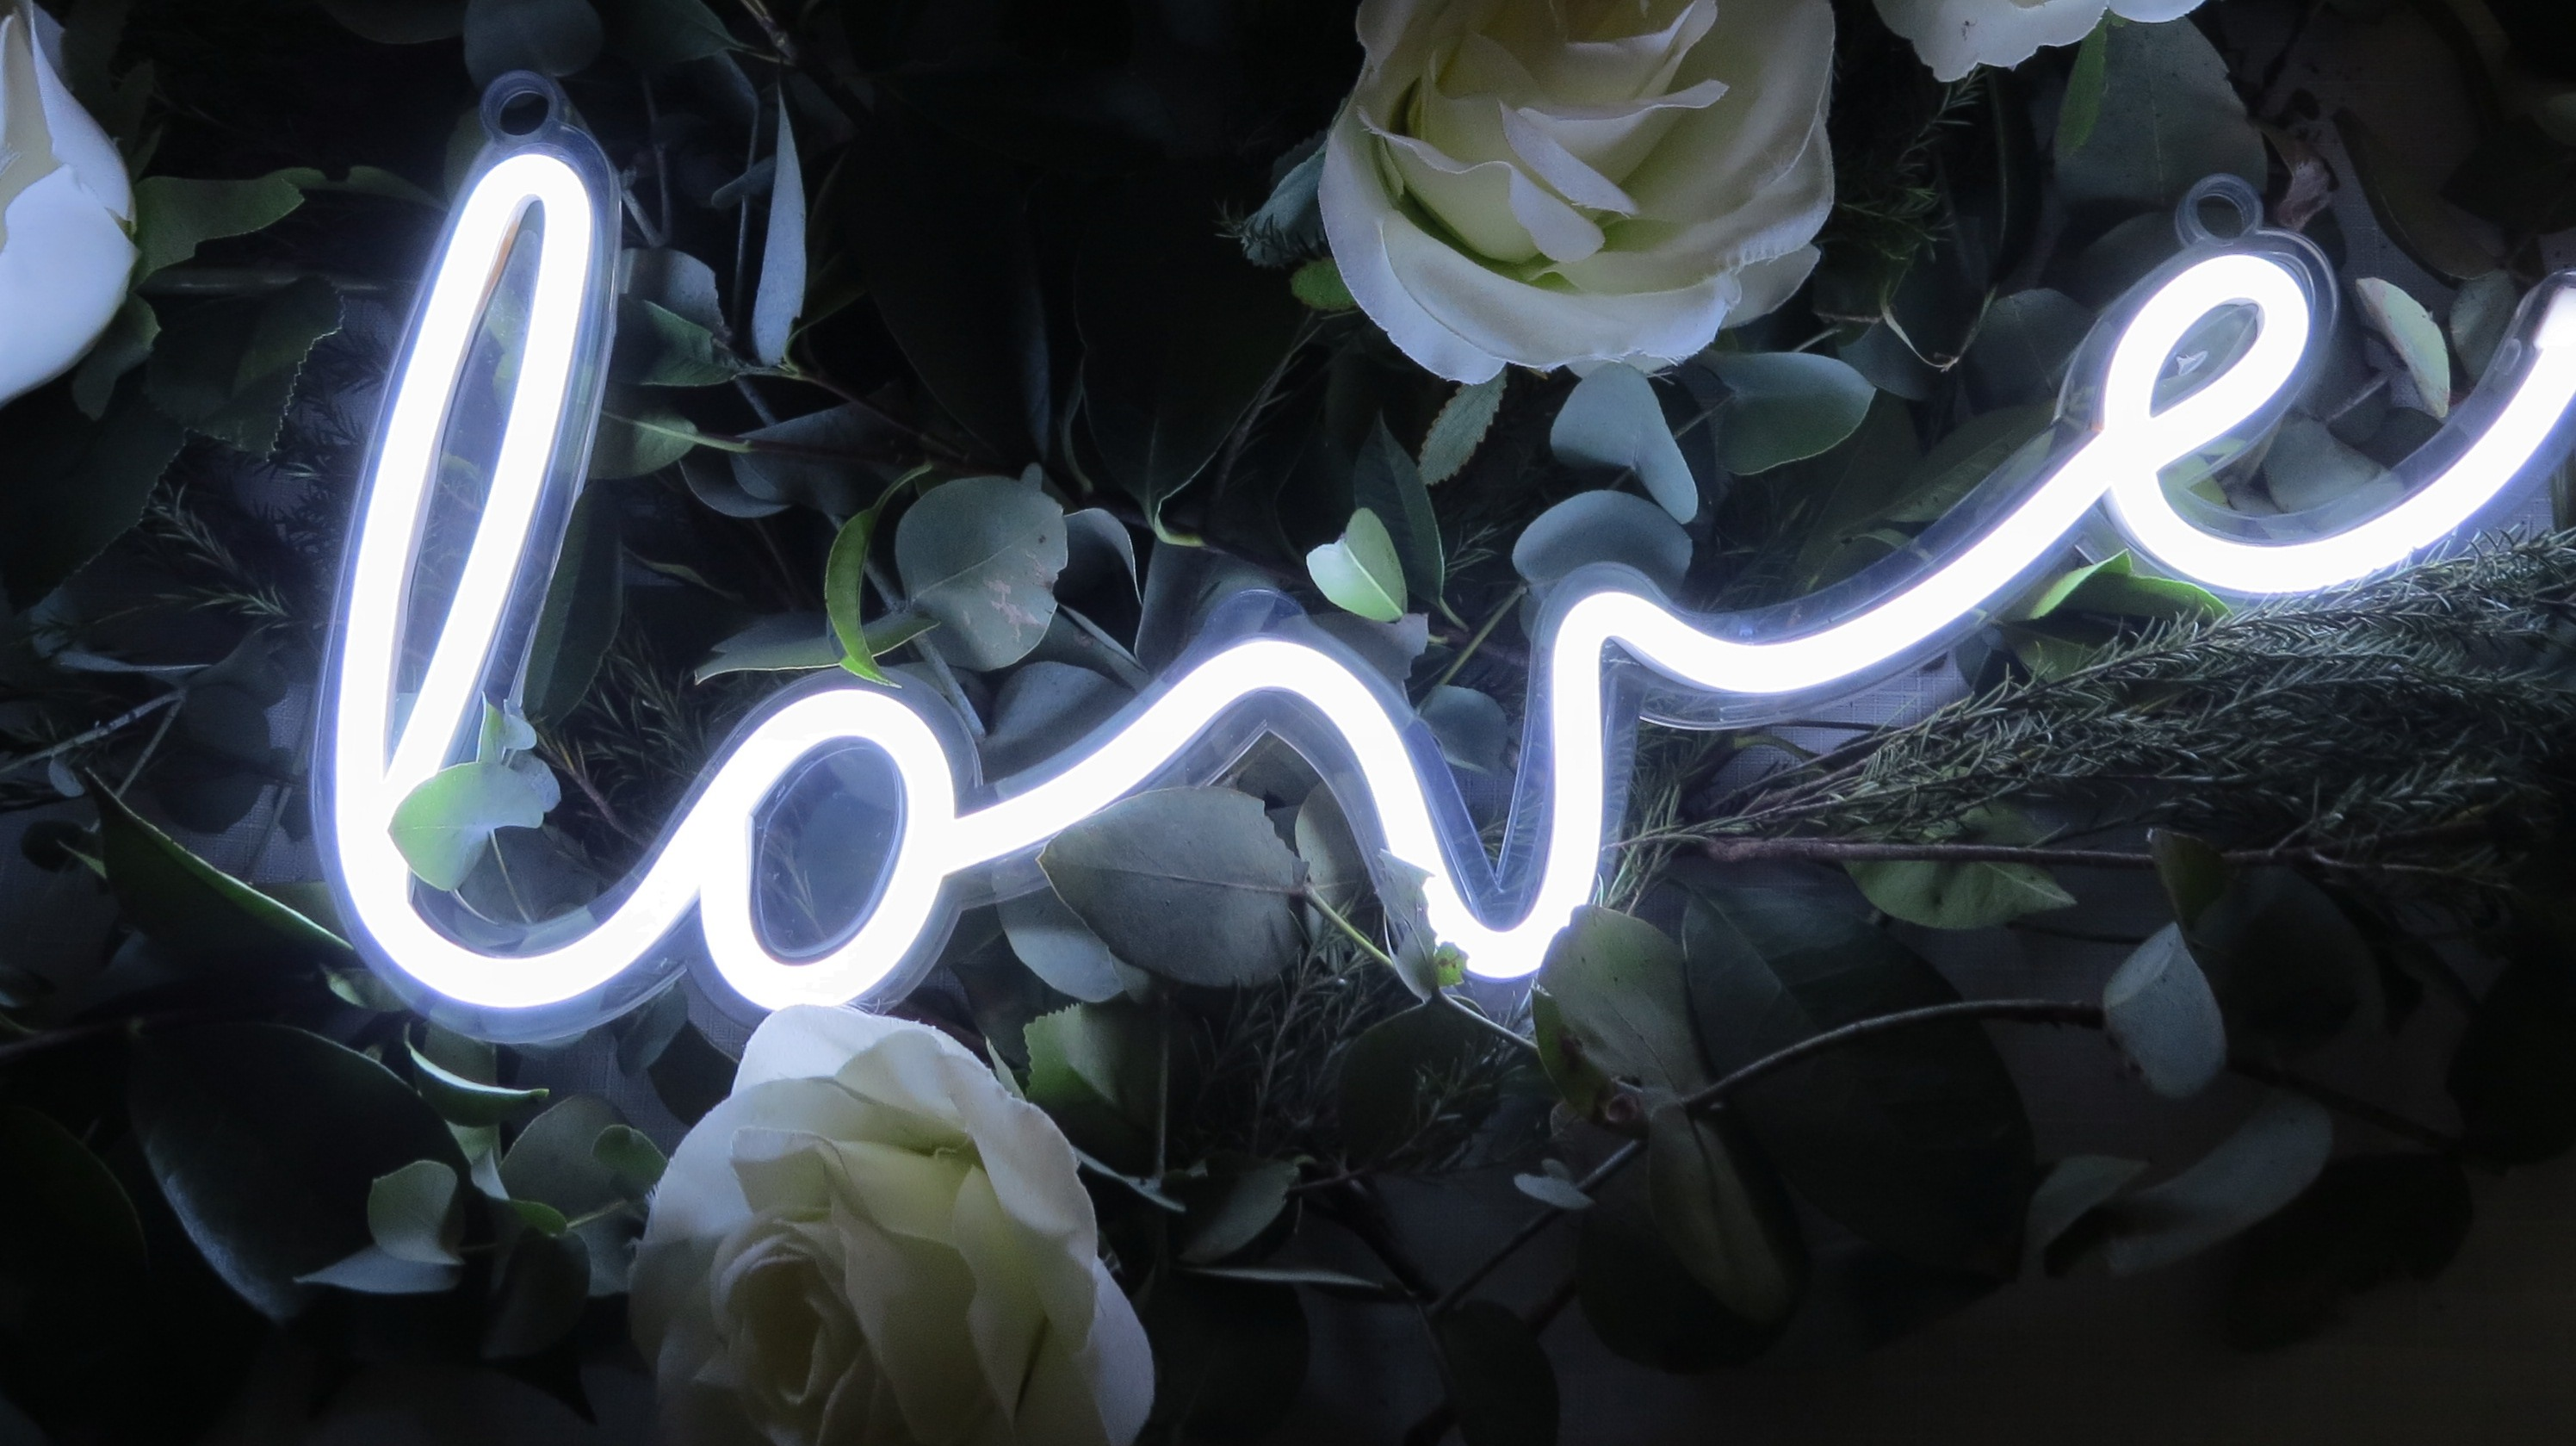 LOVE-WHITE-SMALL-NEON SIGN